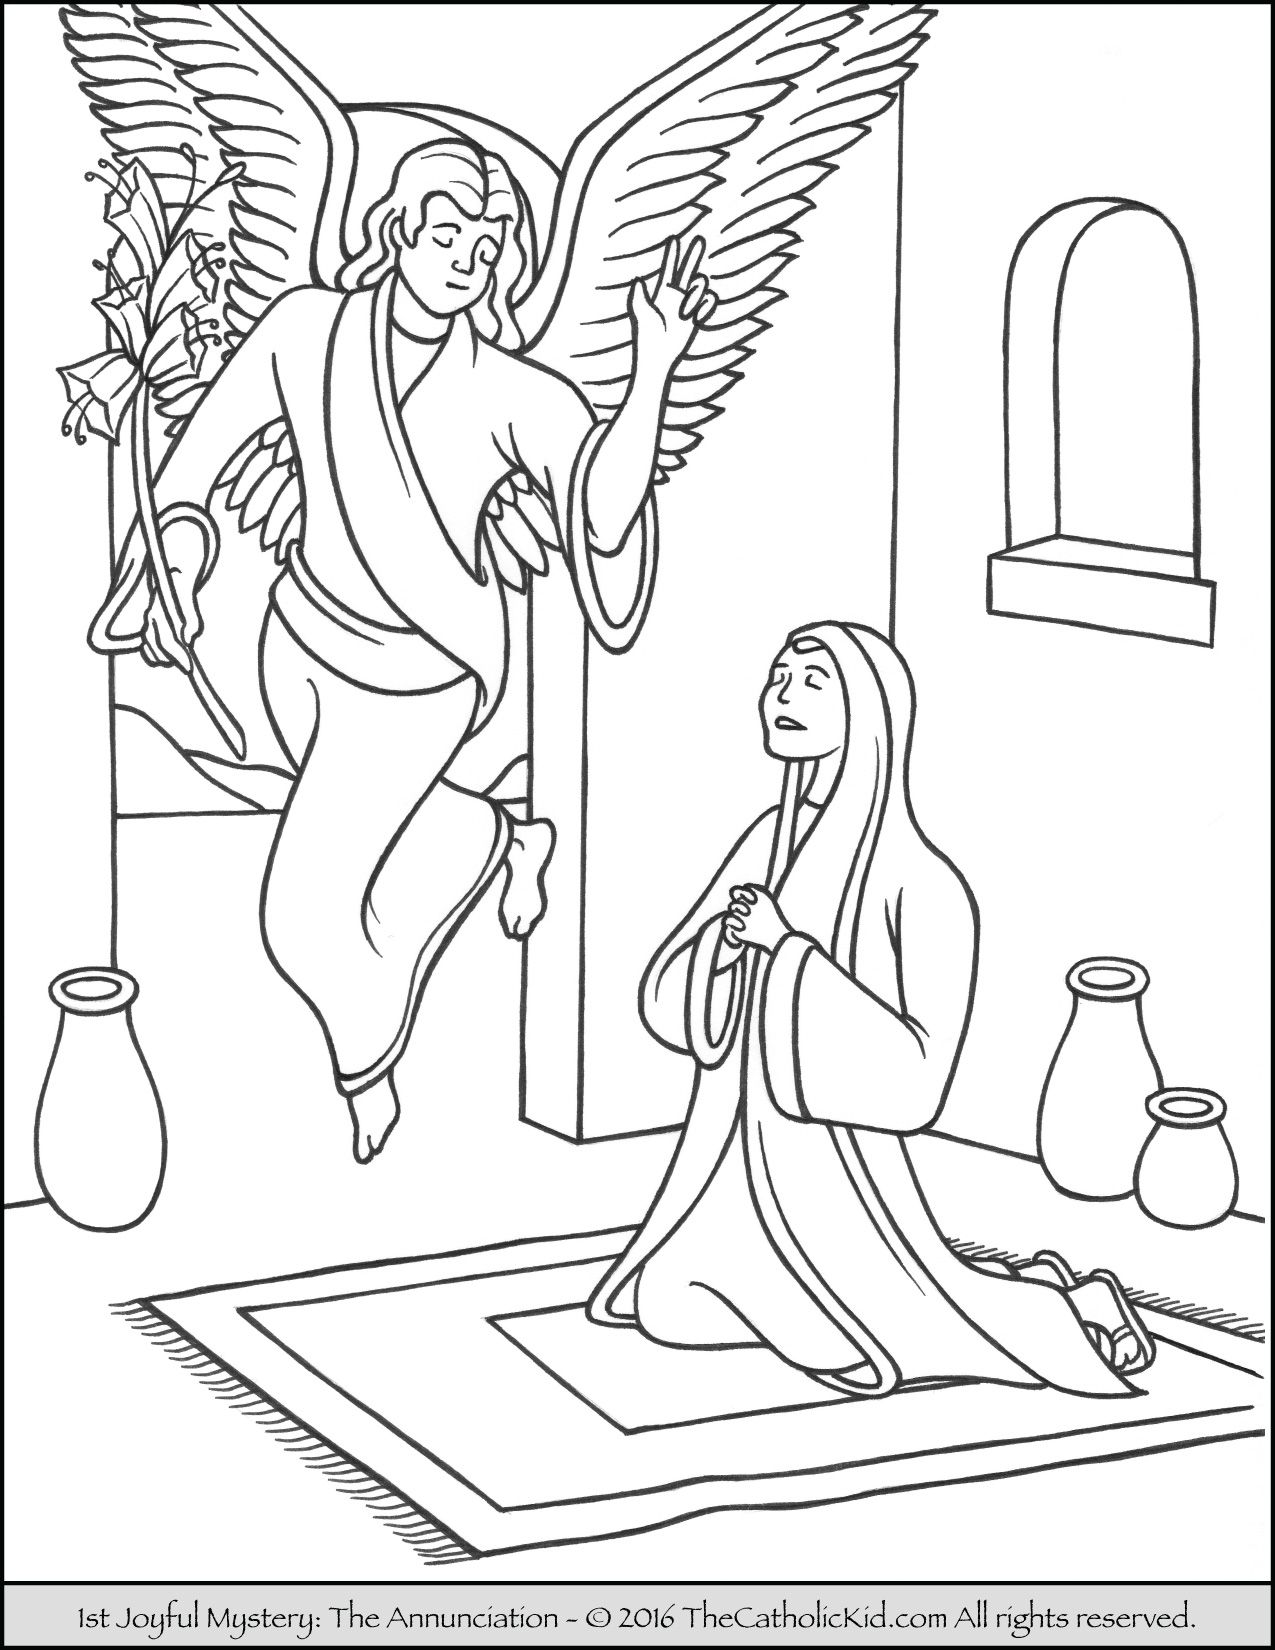 The 1st Joyful Mystery Coloring Page Annunciation Joyful